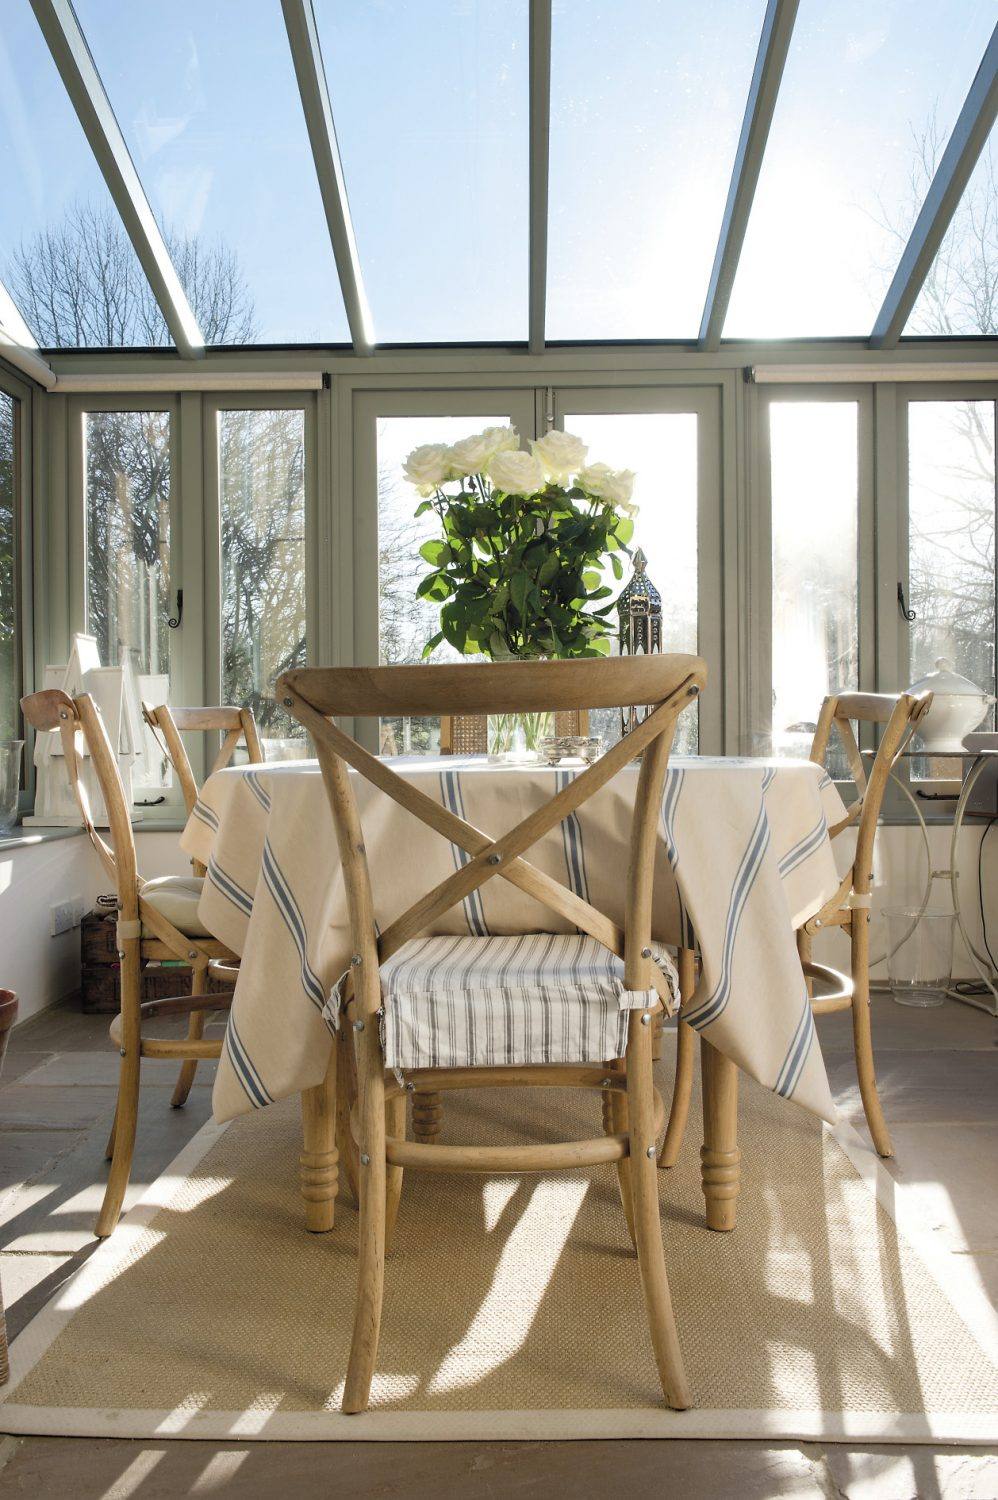 Glorious sunshine pours into the conservatory